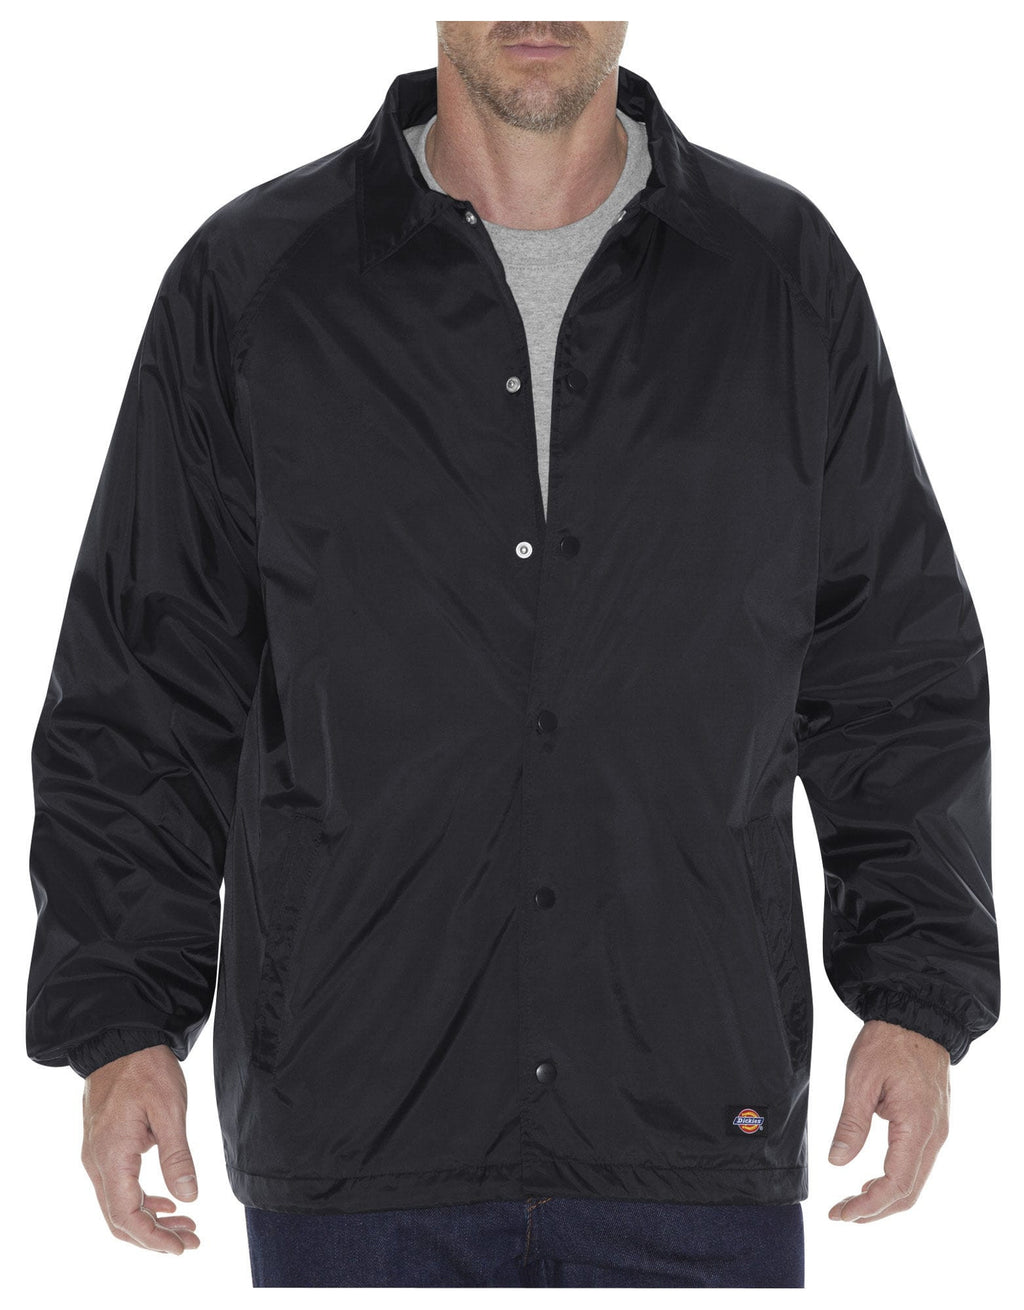 Dickies Nylon Windbreaker Jacket-1